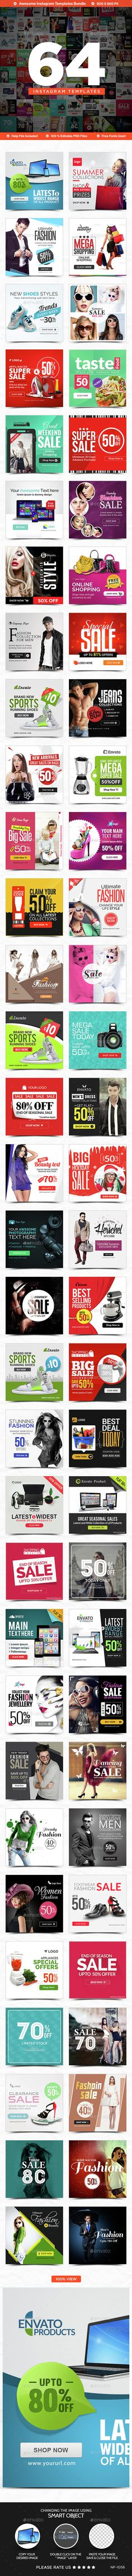 Instagram Templates Bundle - 64 Designs PSD. Download here: http://graphicriver.net/item/instagram-templates-bundle-64-designs/14751658?ref=ksioks